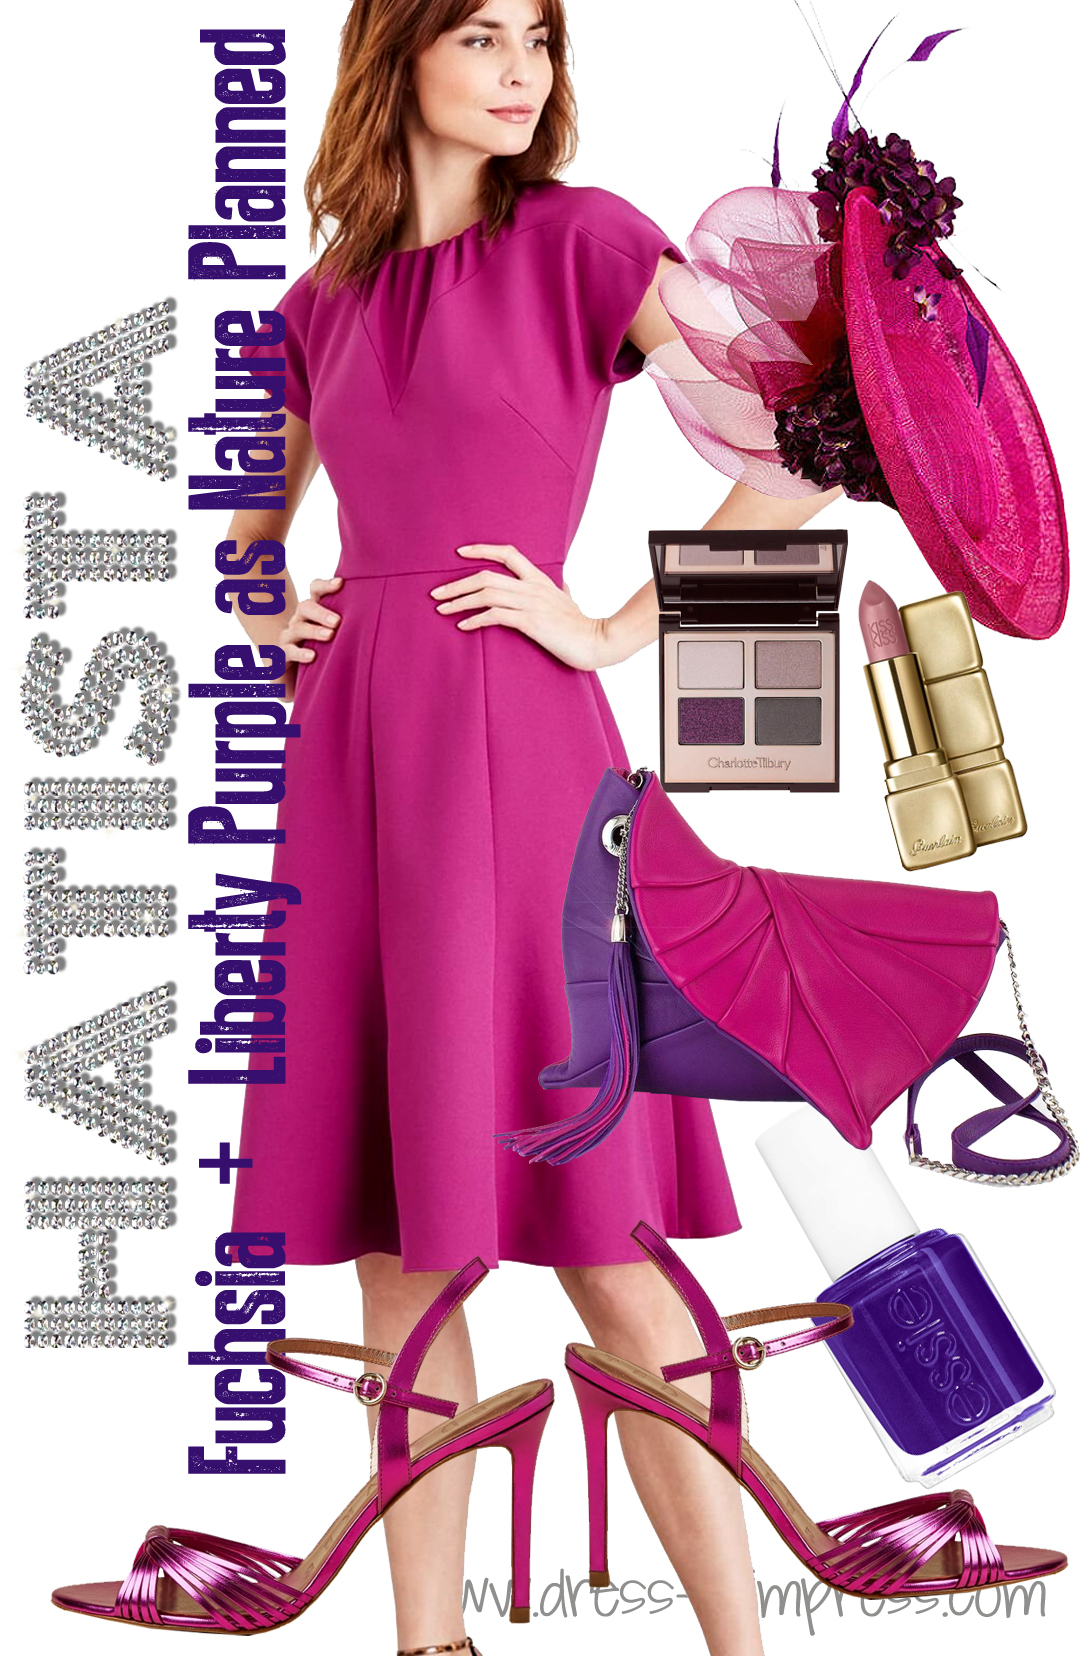 Fuschia and Purple outfit ideas 2020. What to wear to the Races 2020. What to wear for Royal Ascot 2021. Autumn Wedding Guest Outfits 2020. What to wear to an Autumn Wedding 2020. Ladies Day outfit ideas 2020. What to wear to the Horse Races 2020.